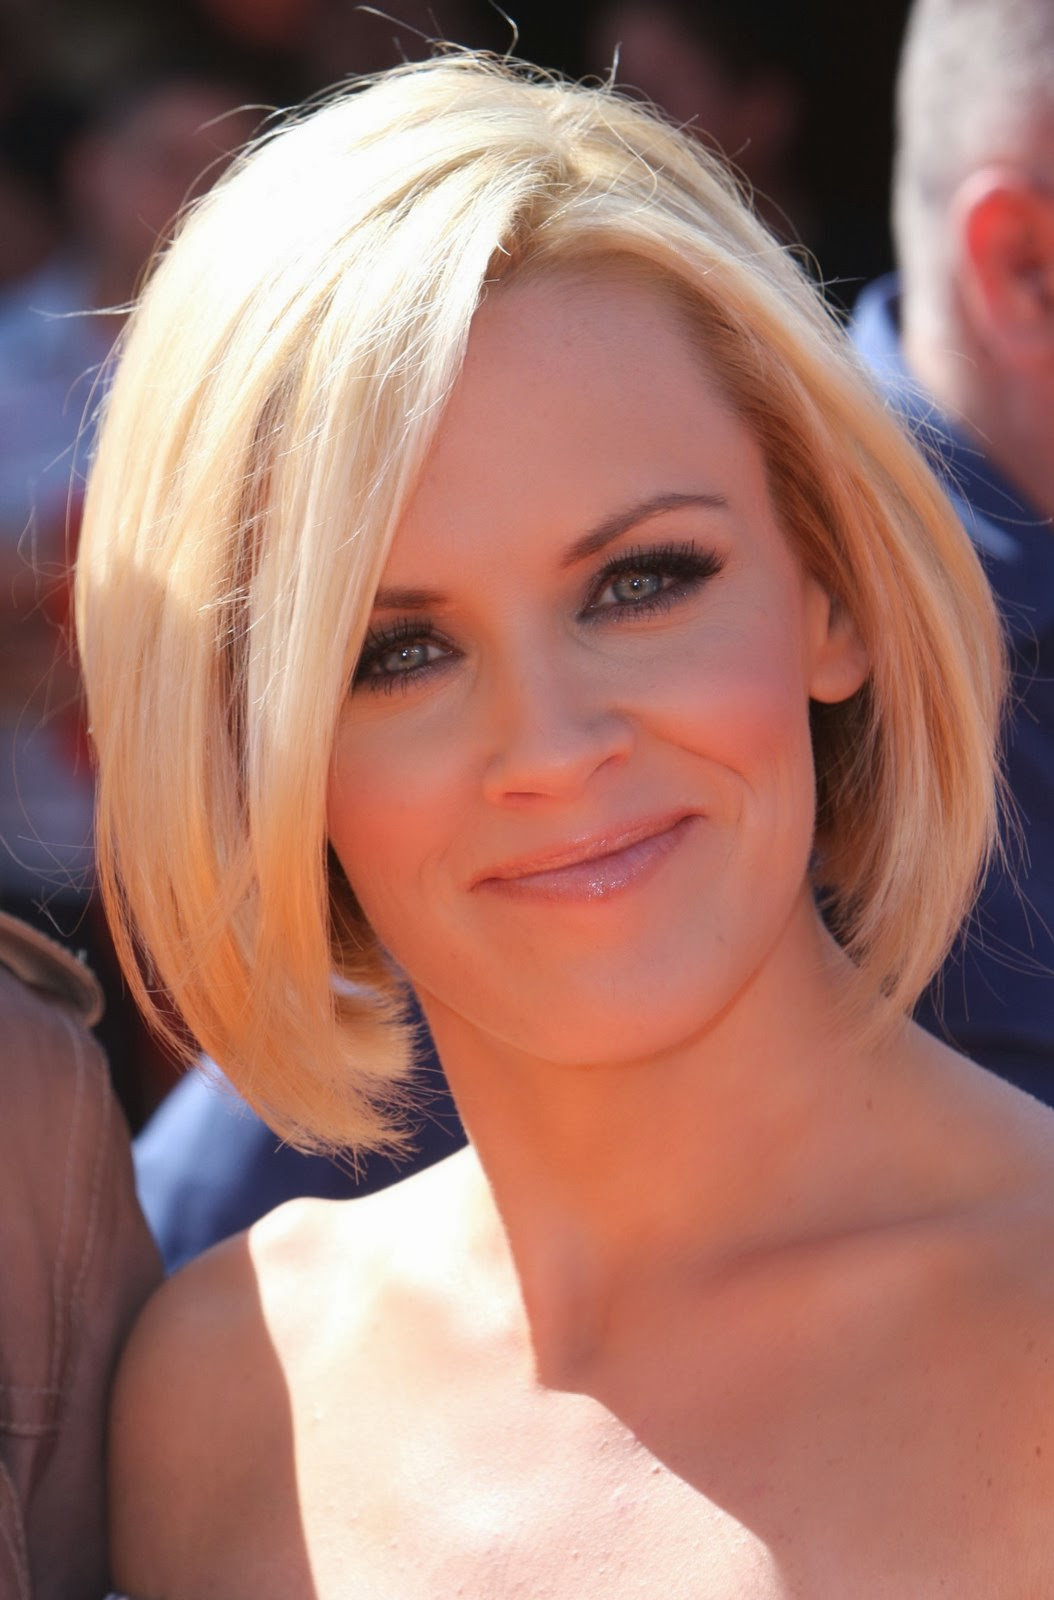 Bob Hairstyles Images  The Most Popular Bob Hairstyles 2014